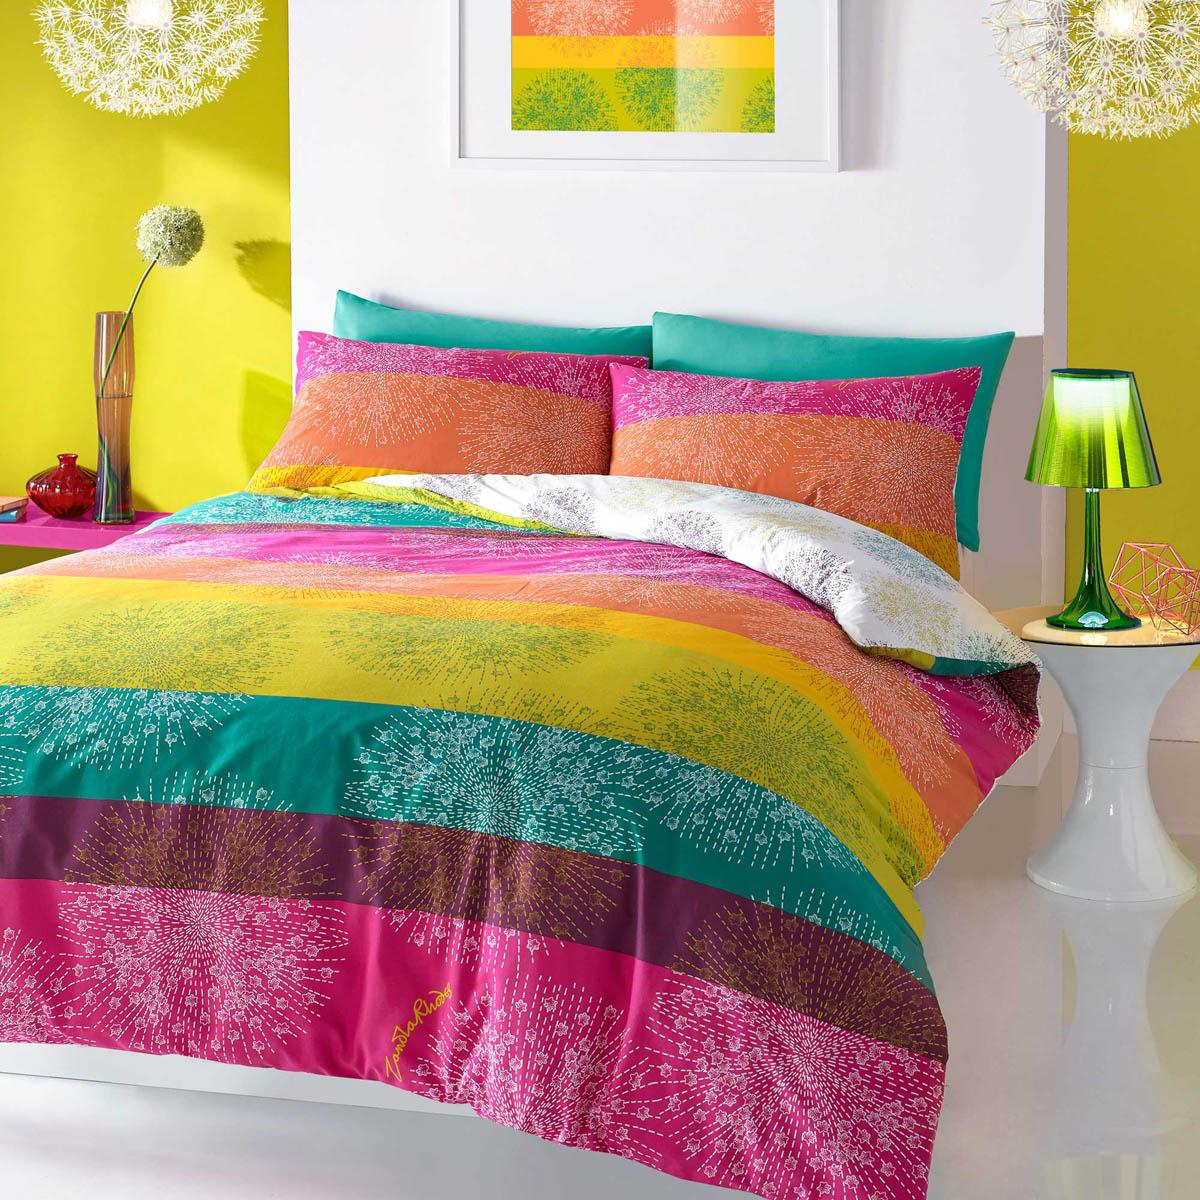 Use Bright Colorful Bedding Sets